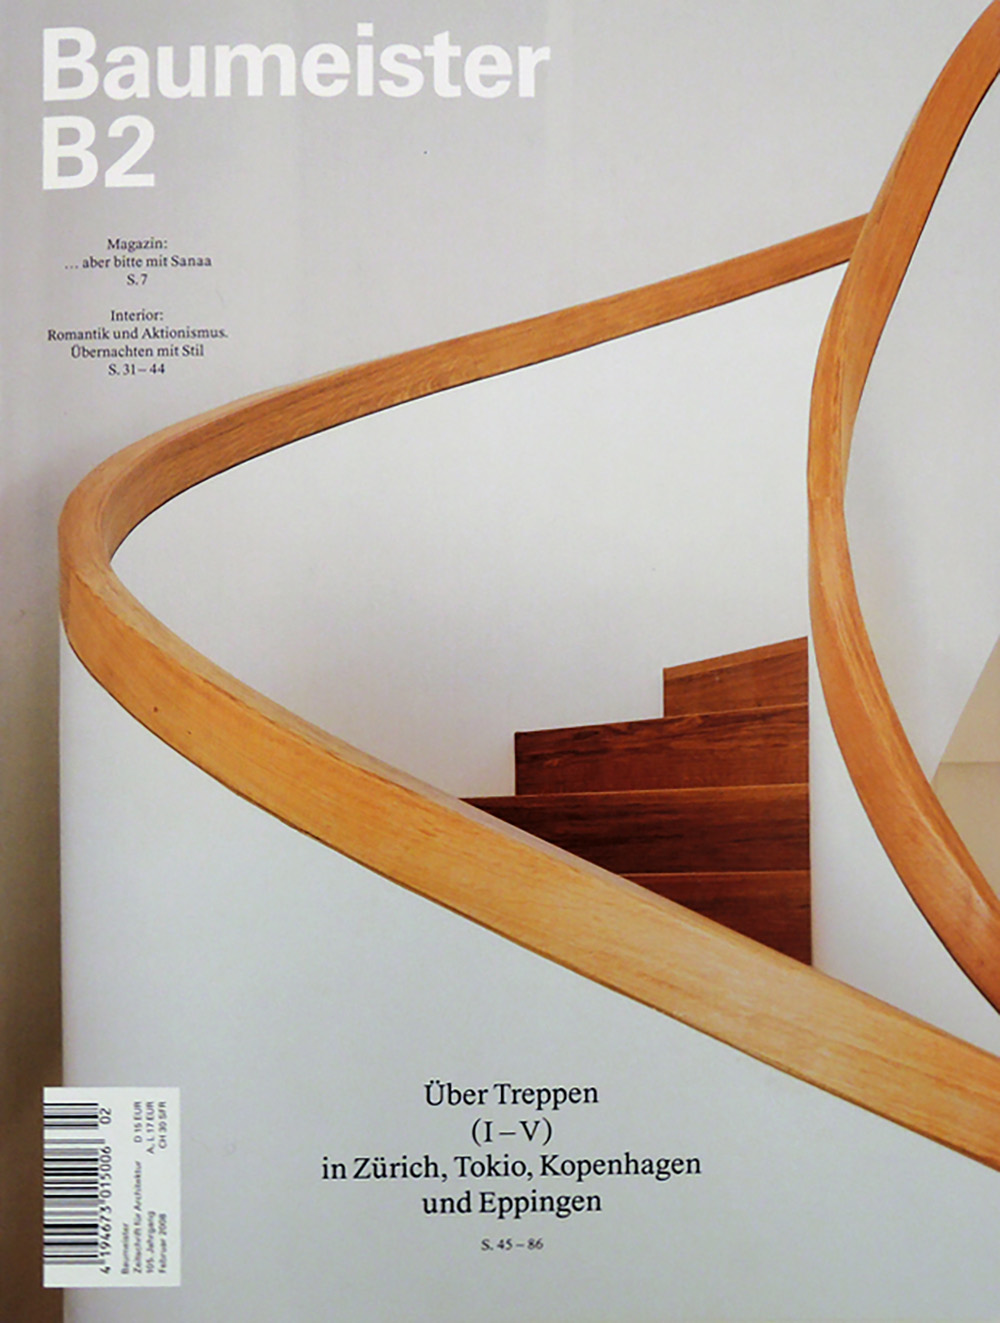 Baumeister-cover